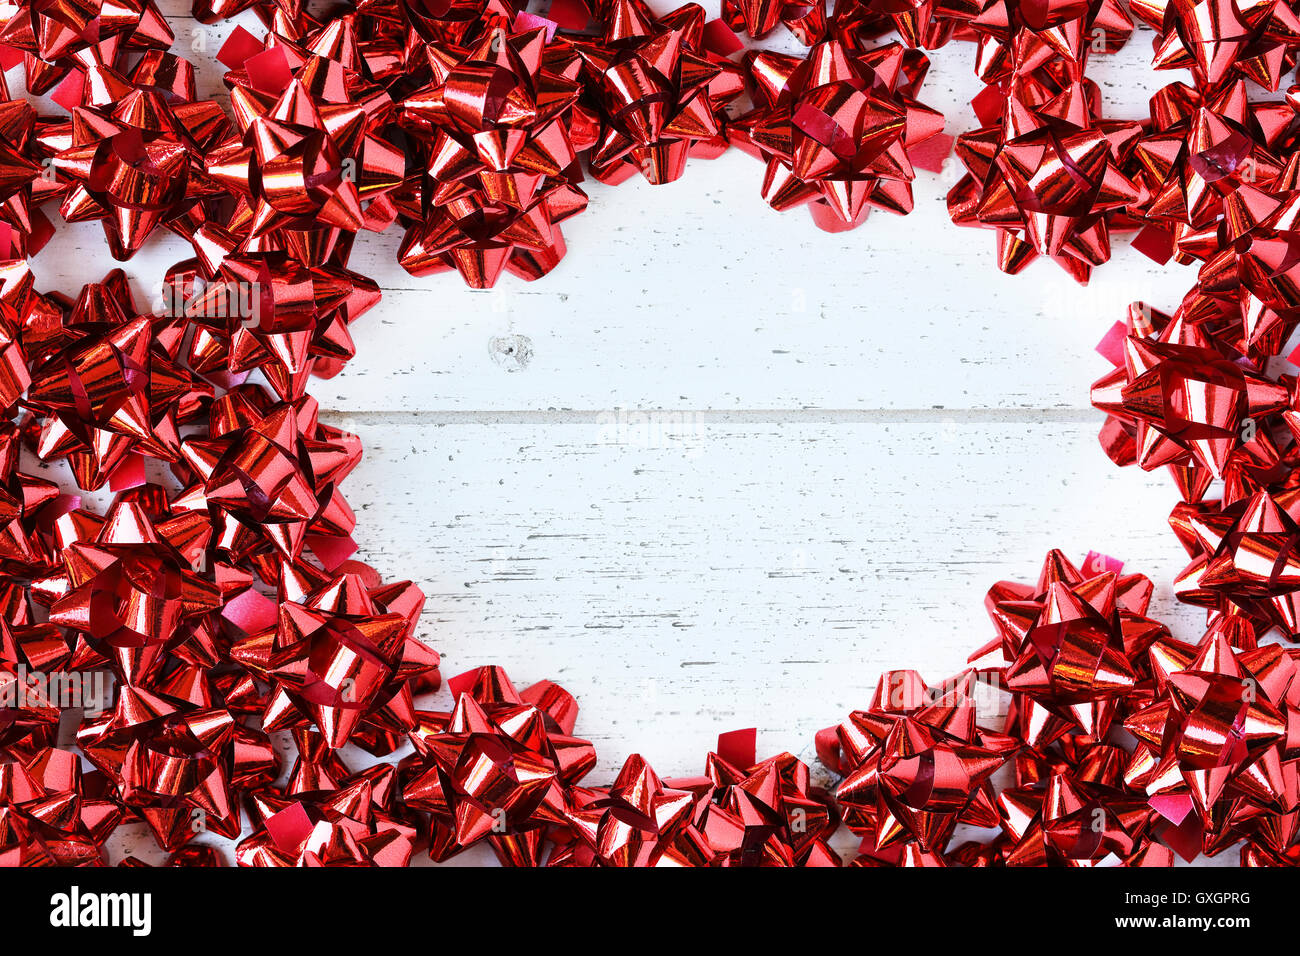 Many red decorative bows for Christmas or other gifts, with copy space. - Stock Image